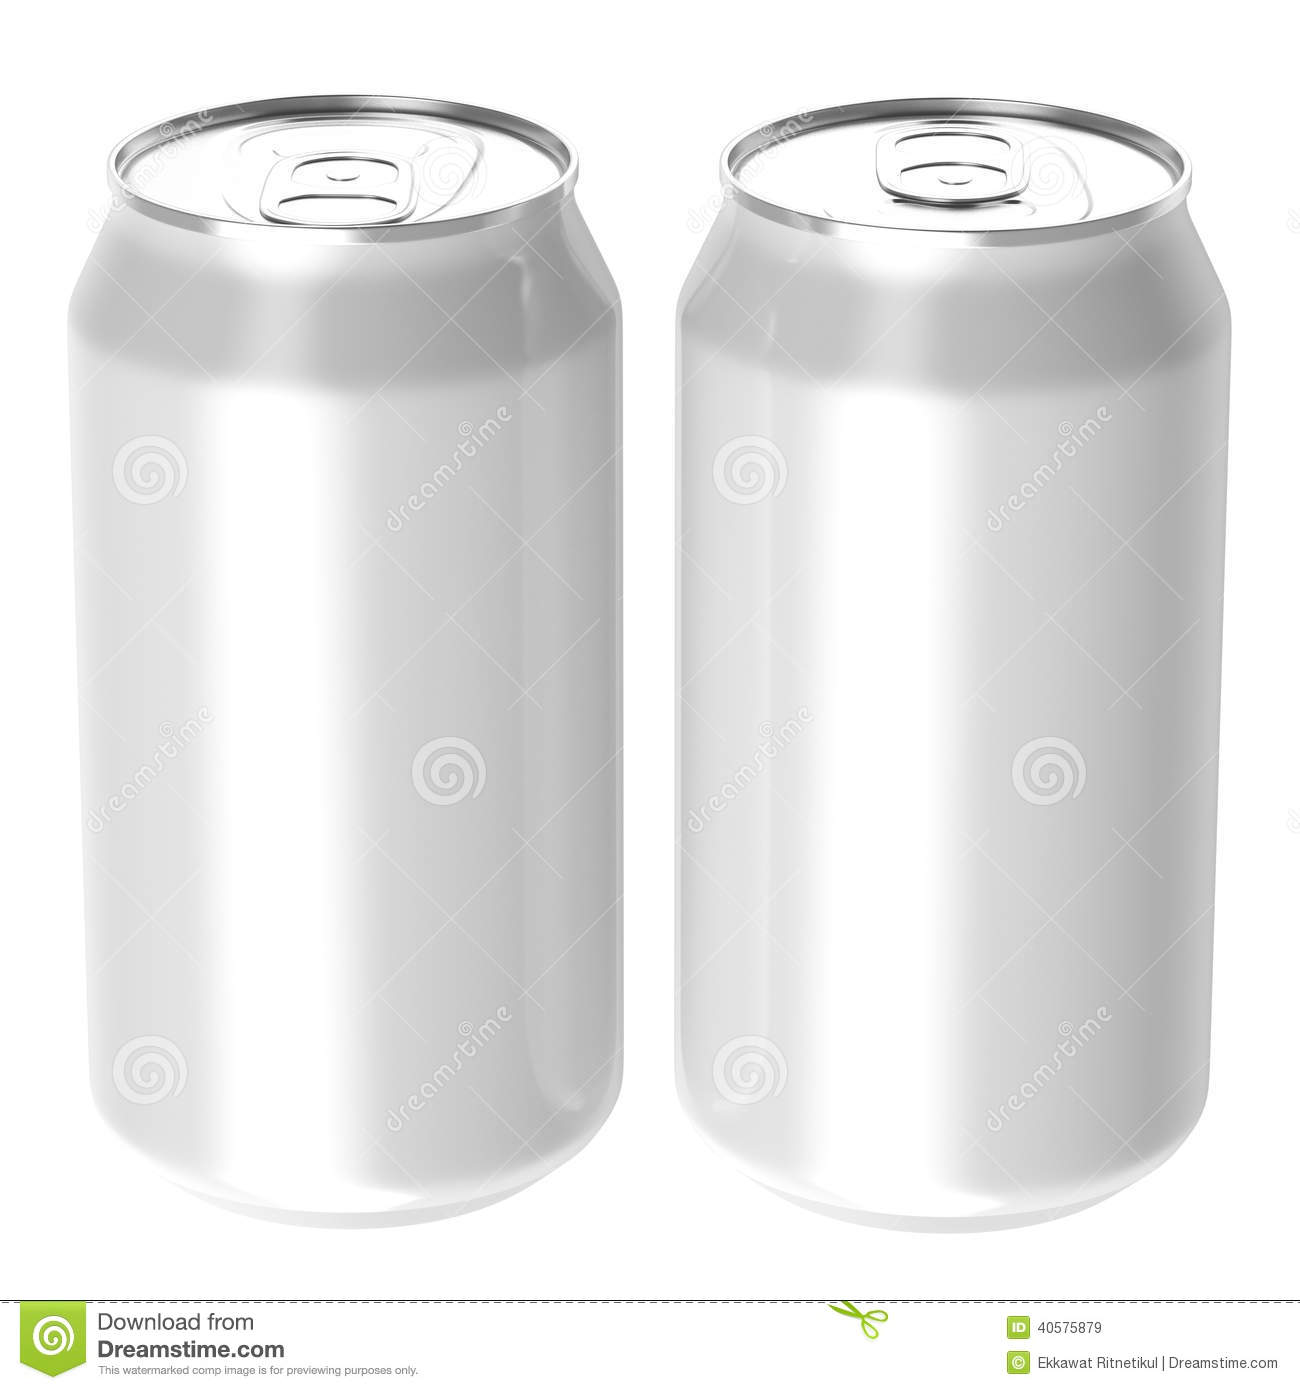 Blank Beer Can Png Two white beverage drink cans